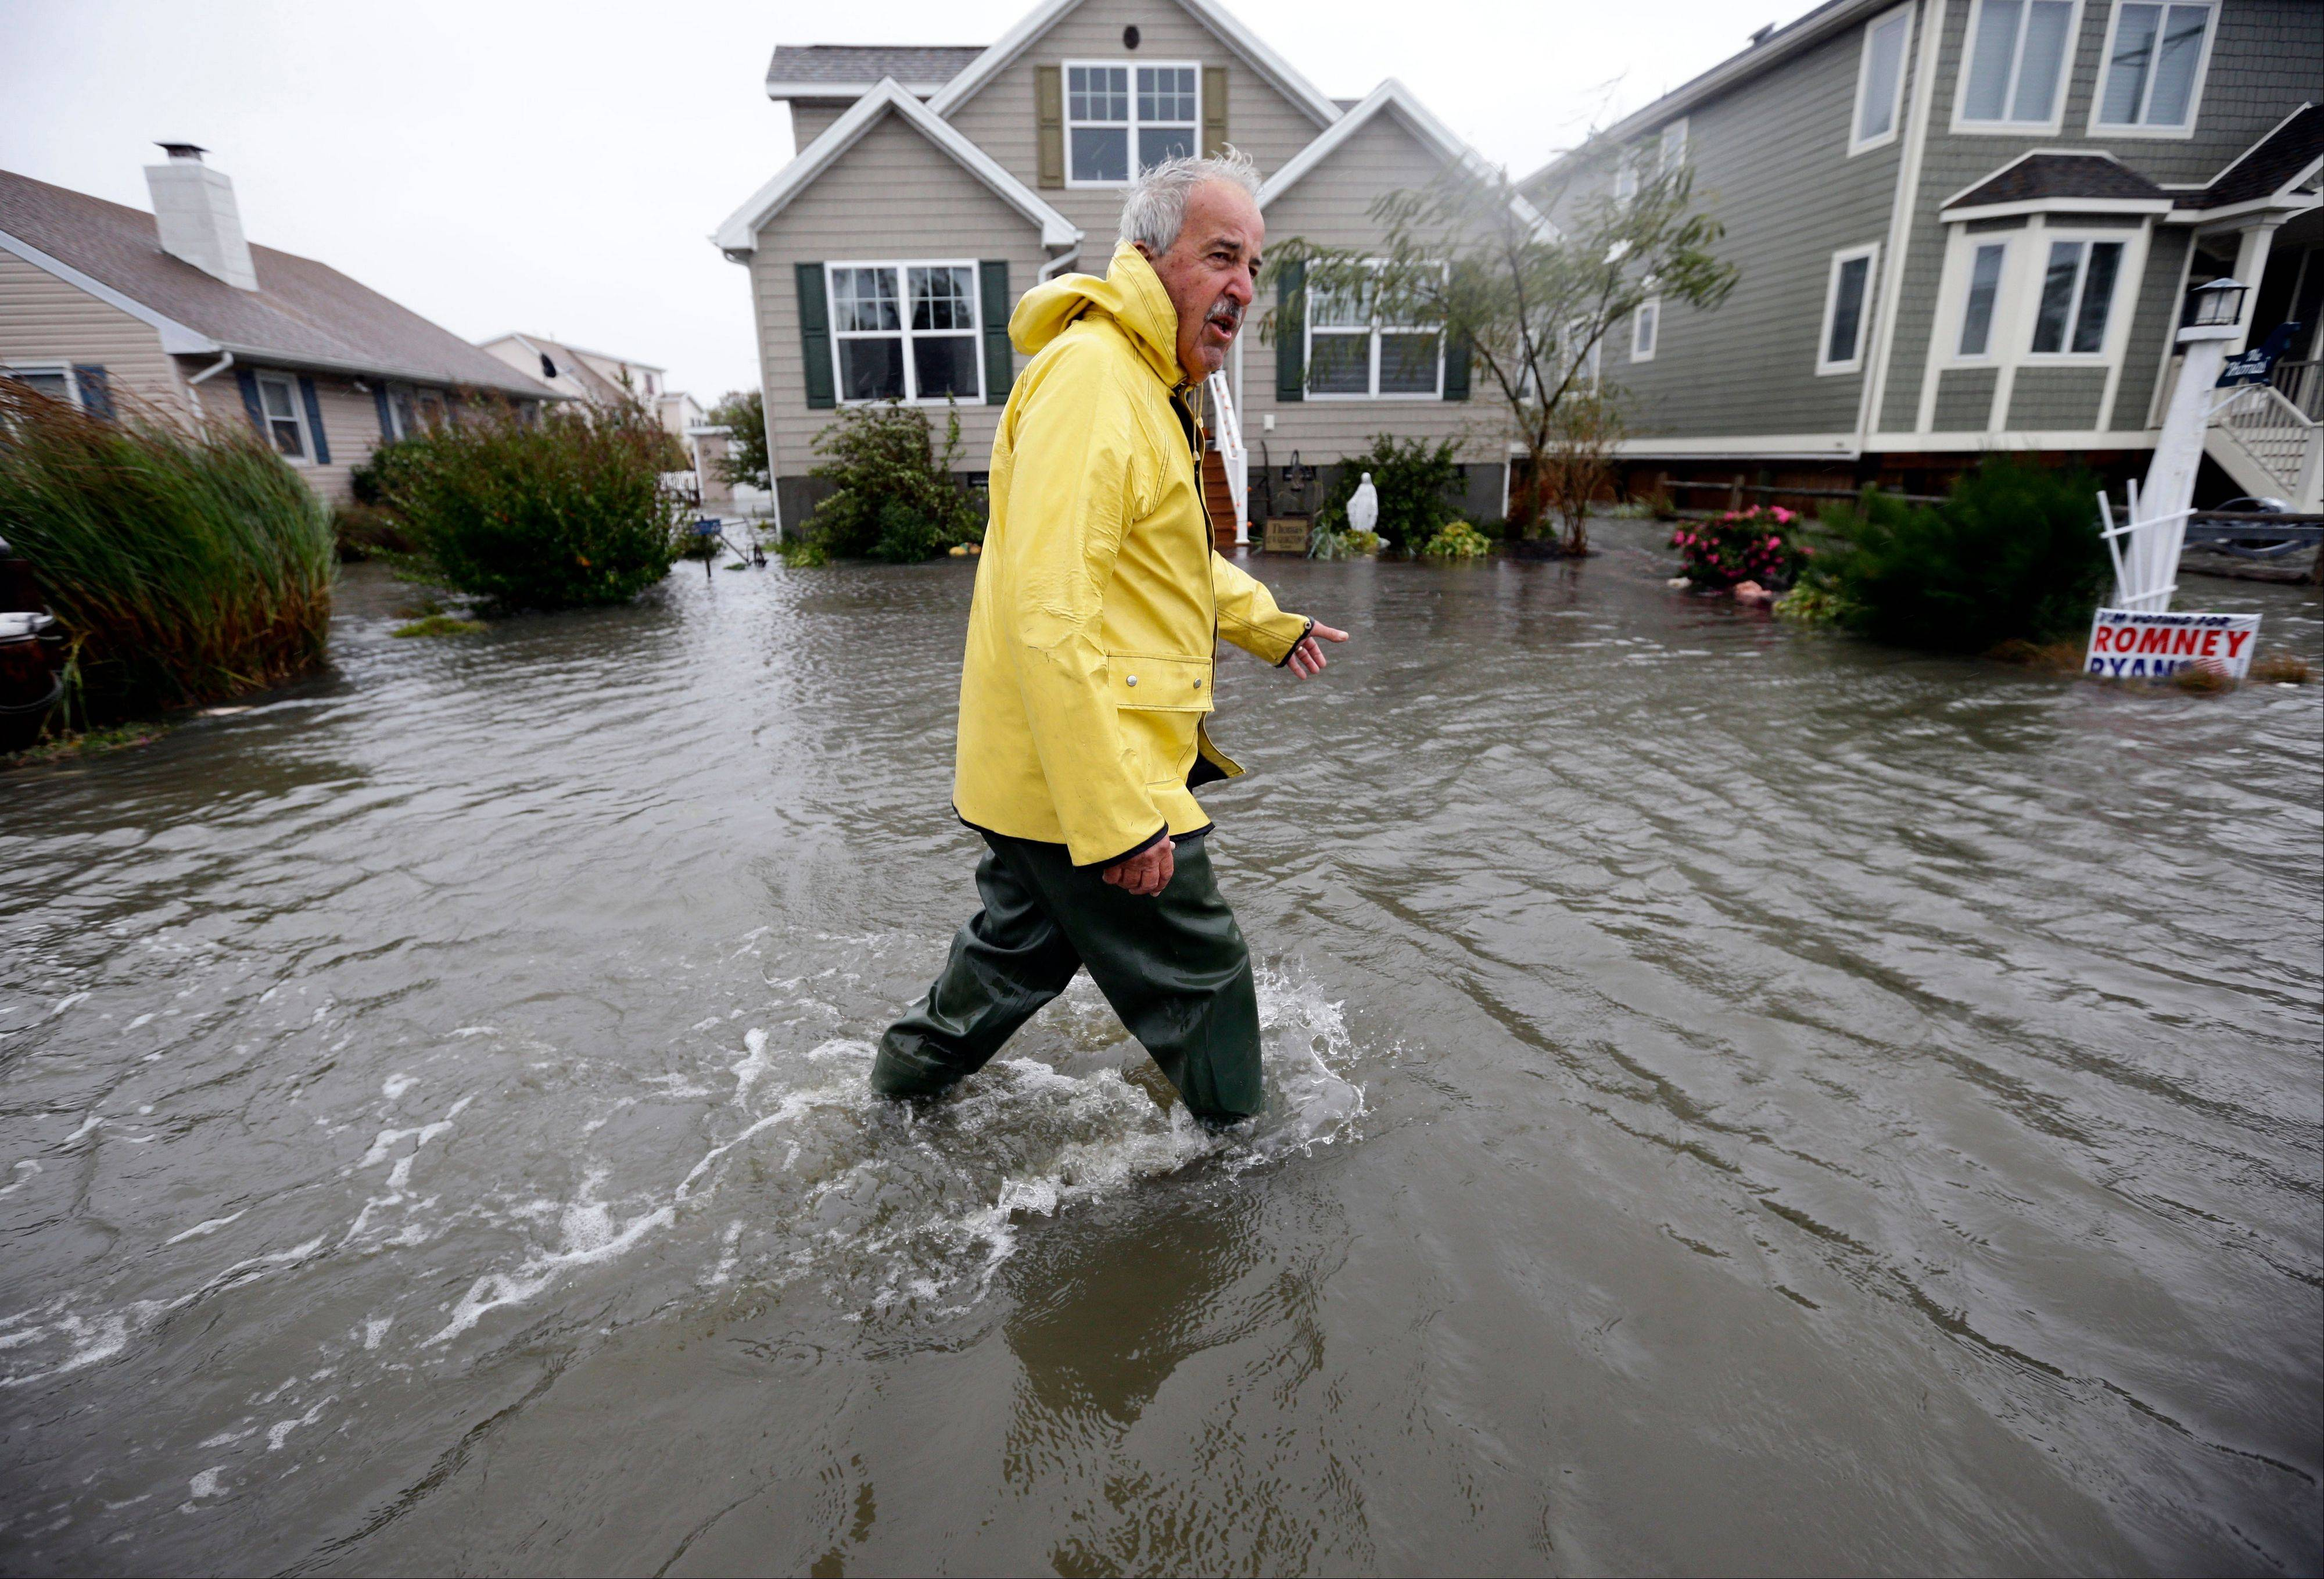 Richard Thomas walks through the floodwaters in front of his home after assisting neighbors as Hurricane Sandy bears down on the East Coast, Monday in Fenwick Island, Del.